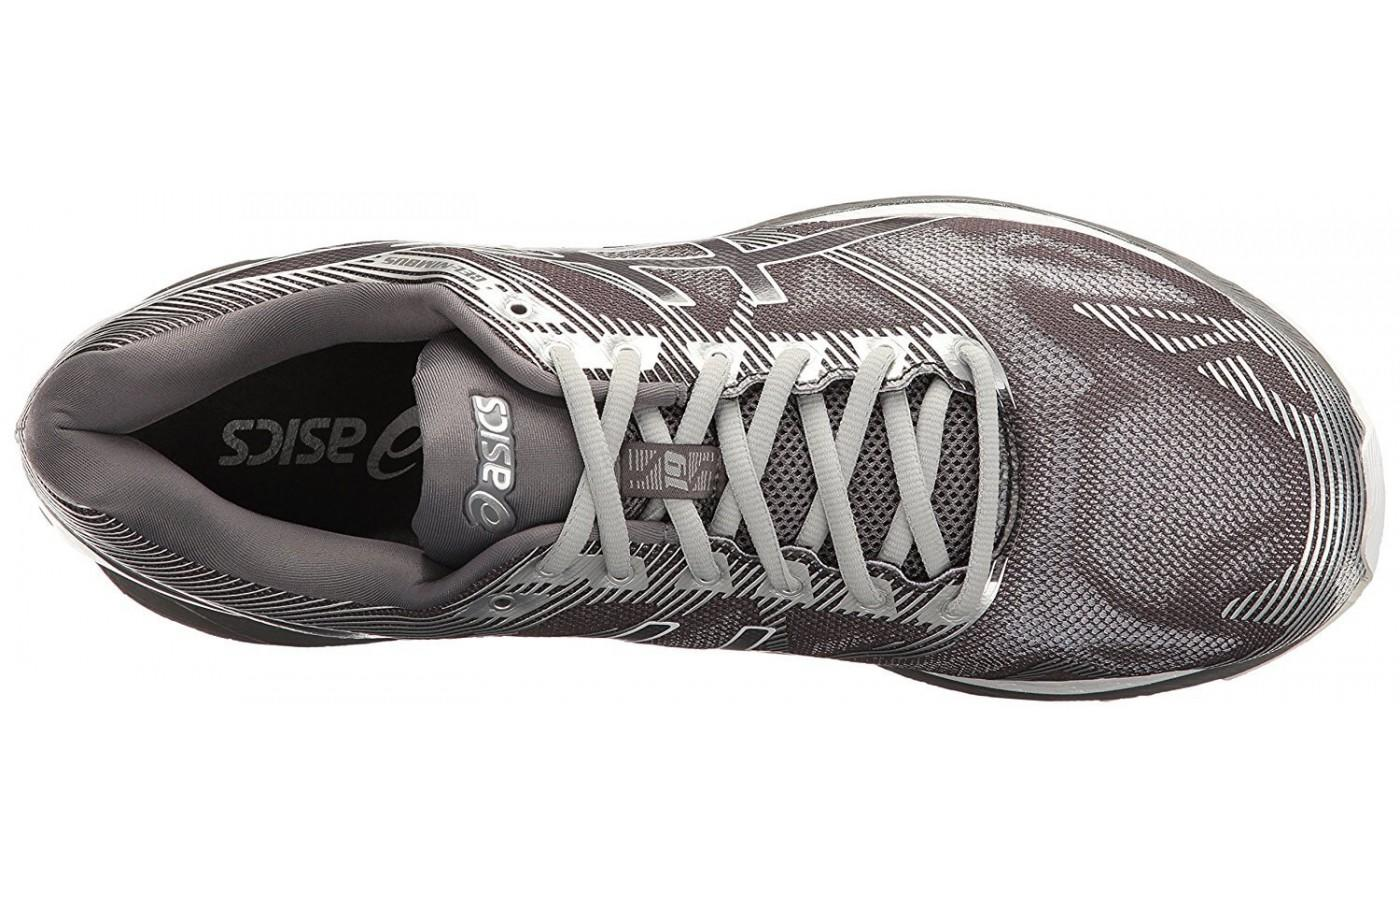 434406e5f9343 The updated upper of the ASICS Gel Nimbus 19 gives runners a glove-like fit  ...